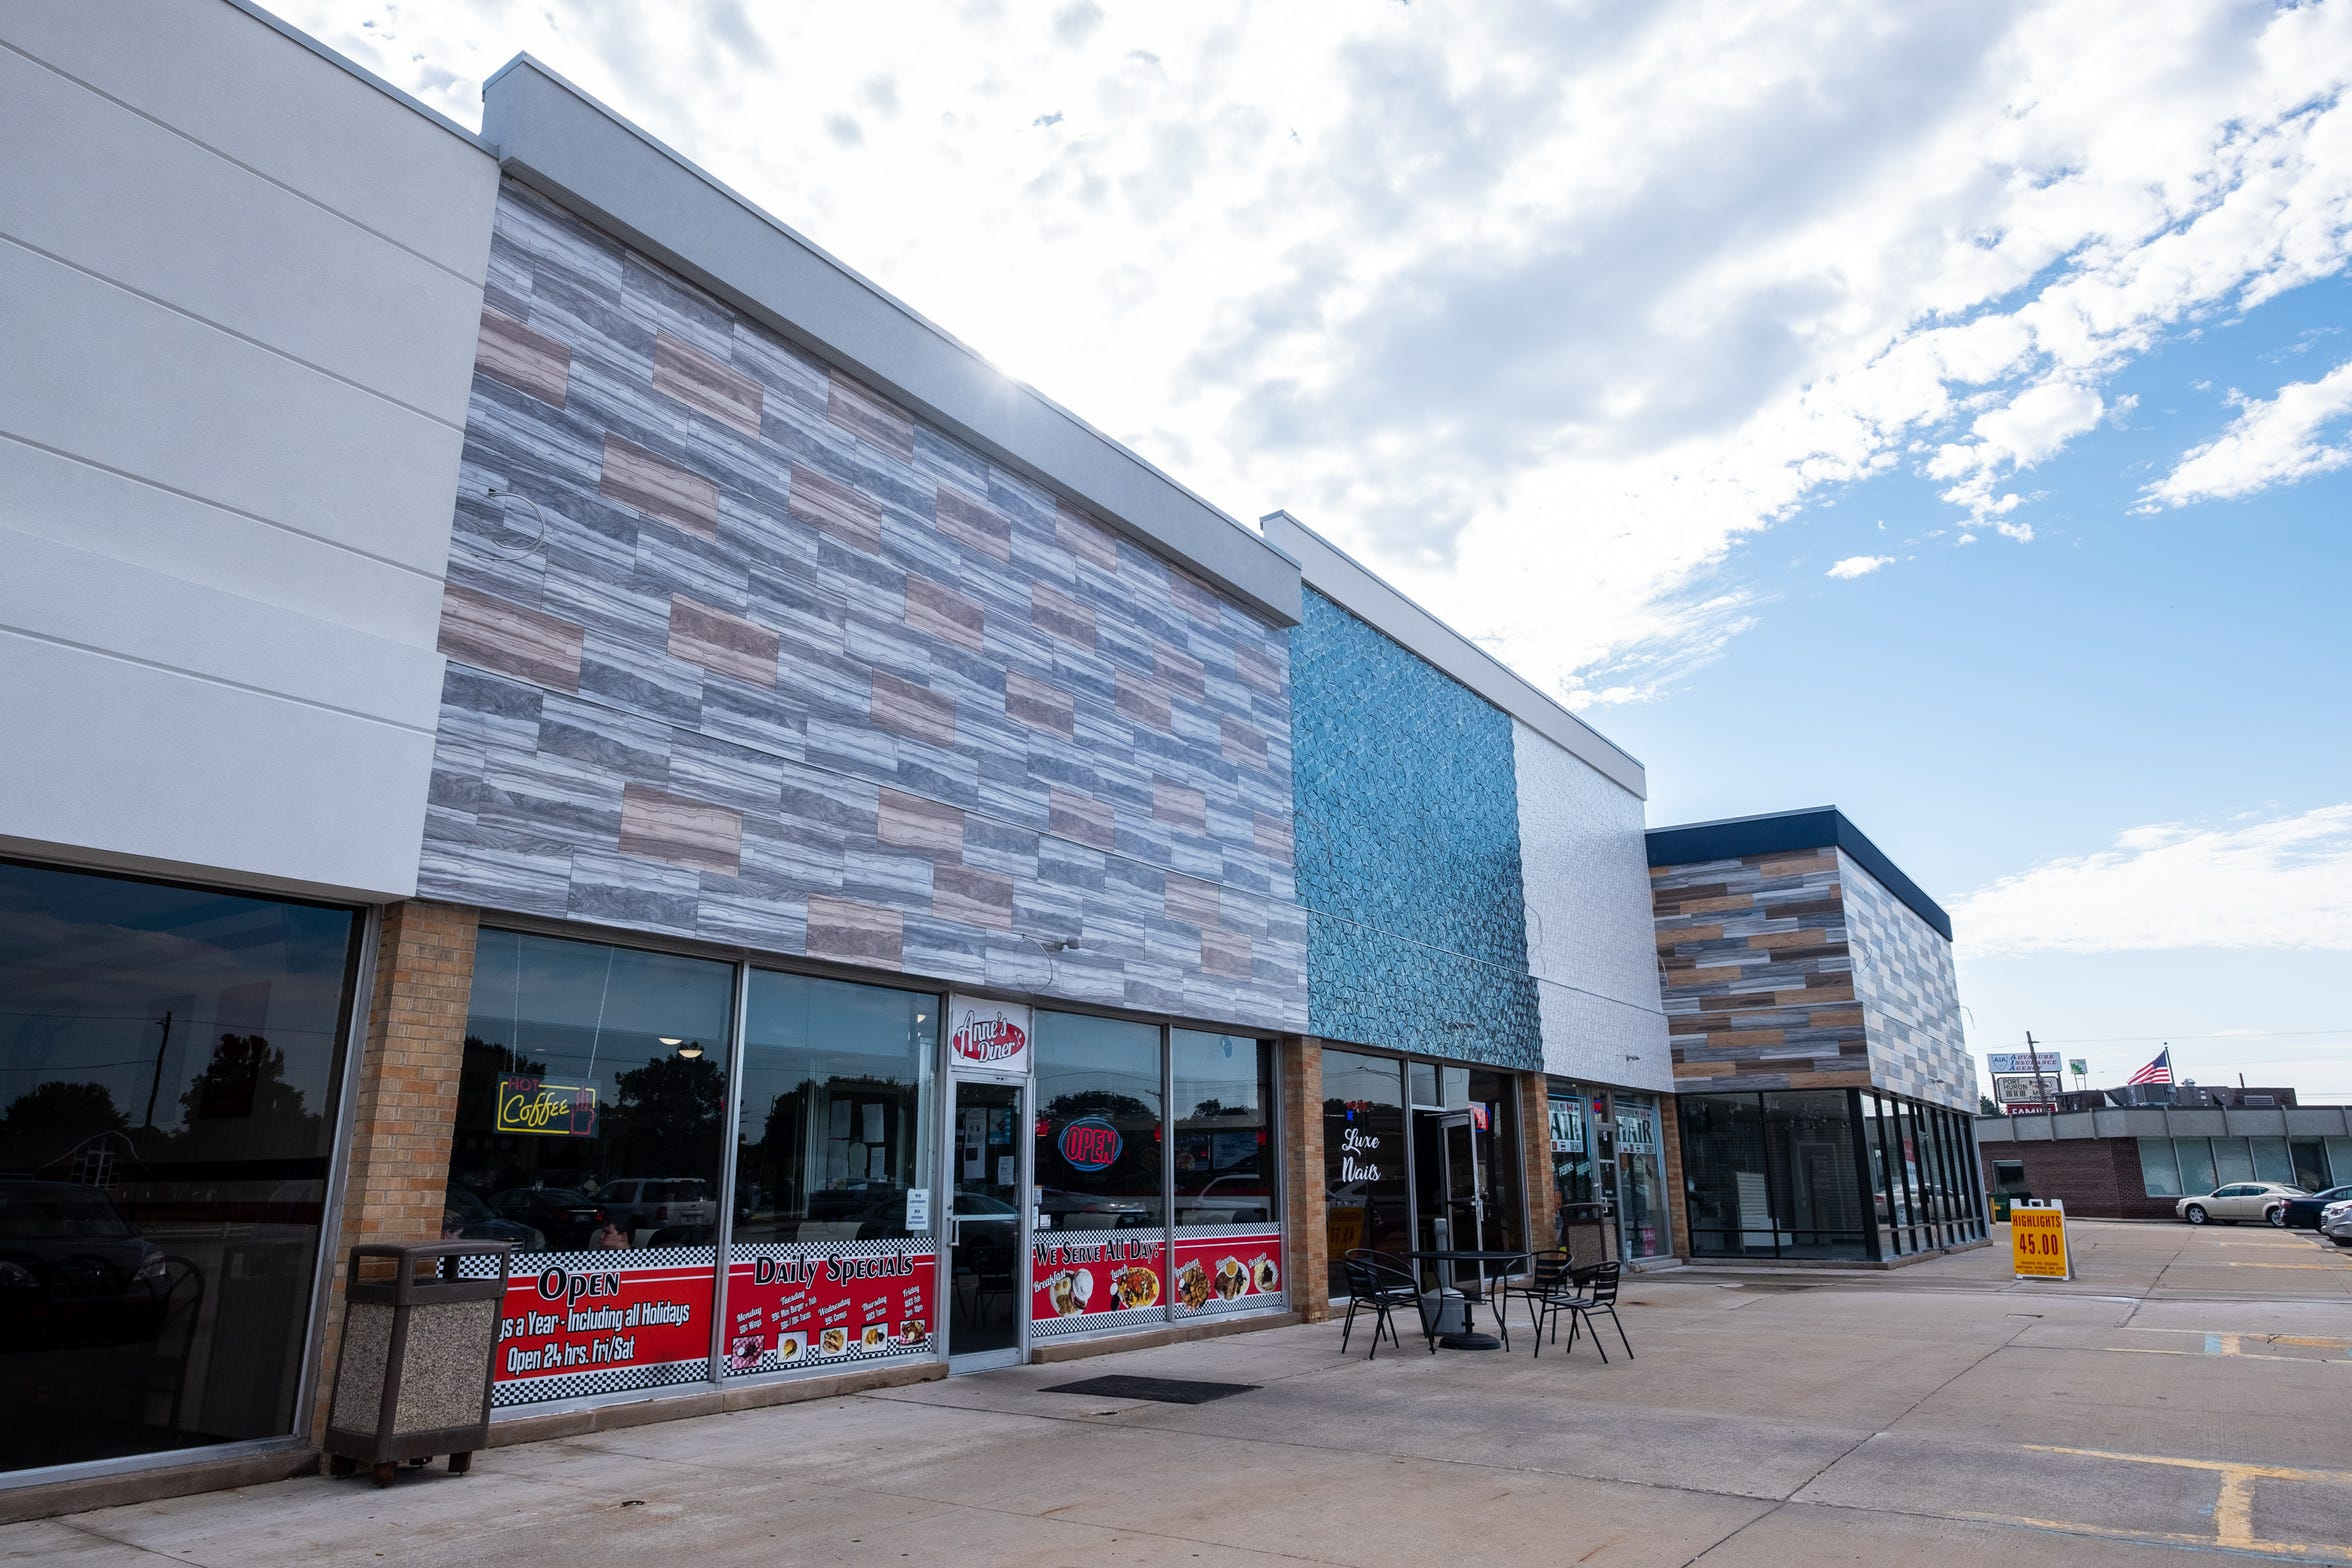 The Port Huron Town Center complex, located on the east side of the 2800 block of PIne Grove Avenue, was first slated to get an upgrade under new ownership in 2017. The upgrade is in the last phase of construction.